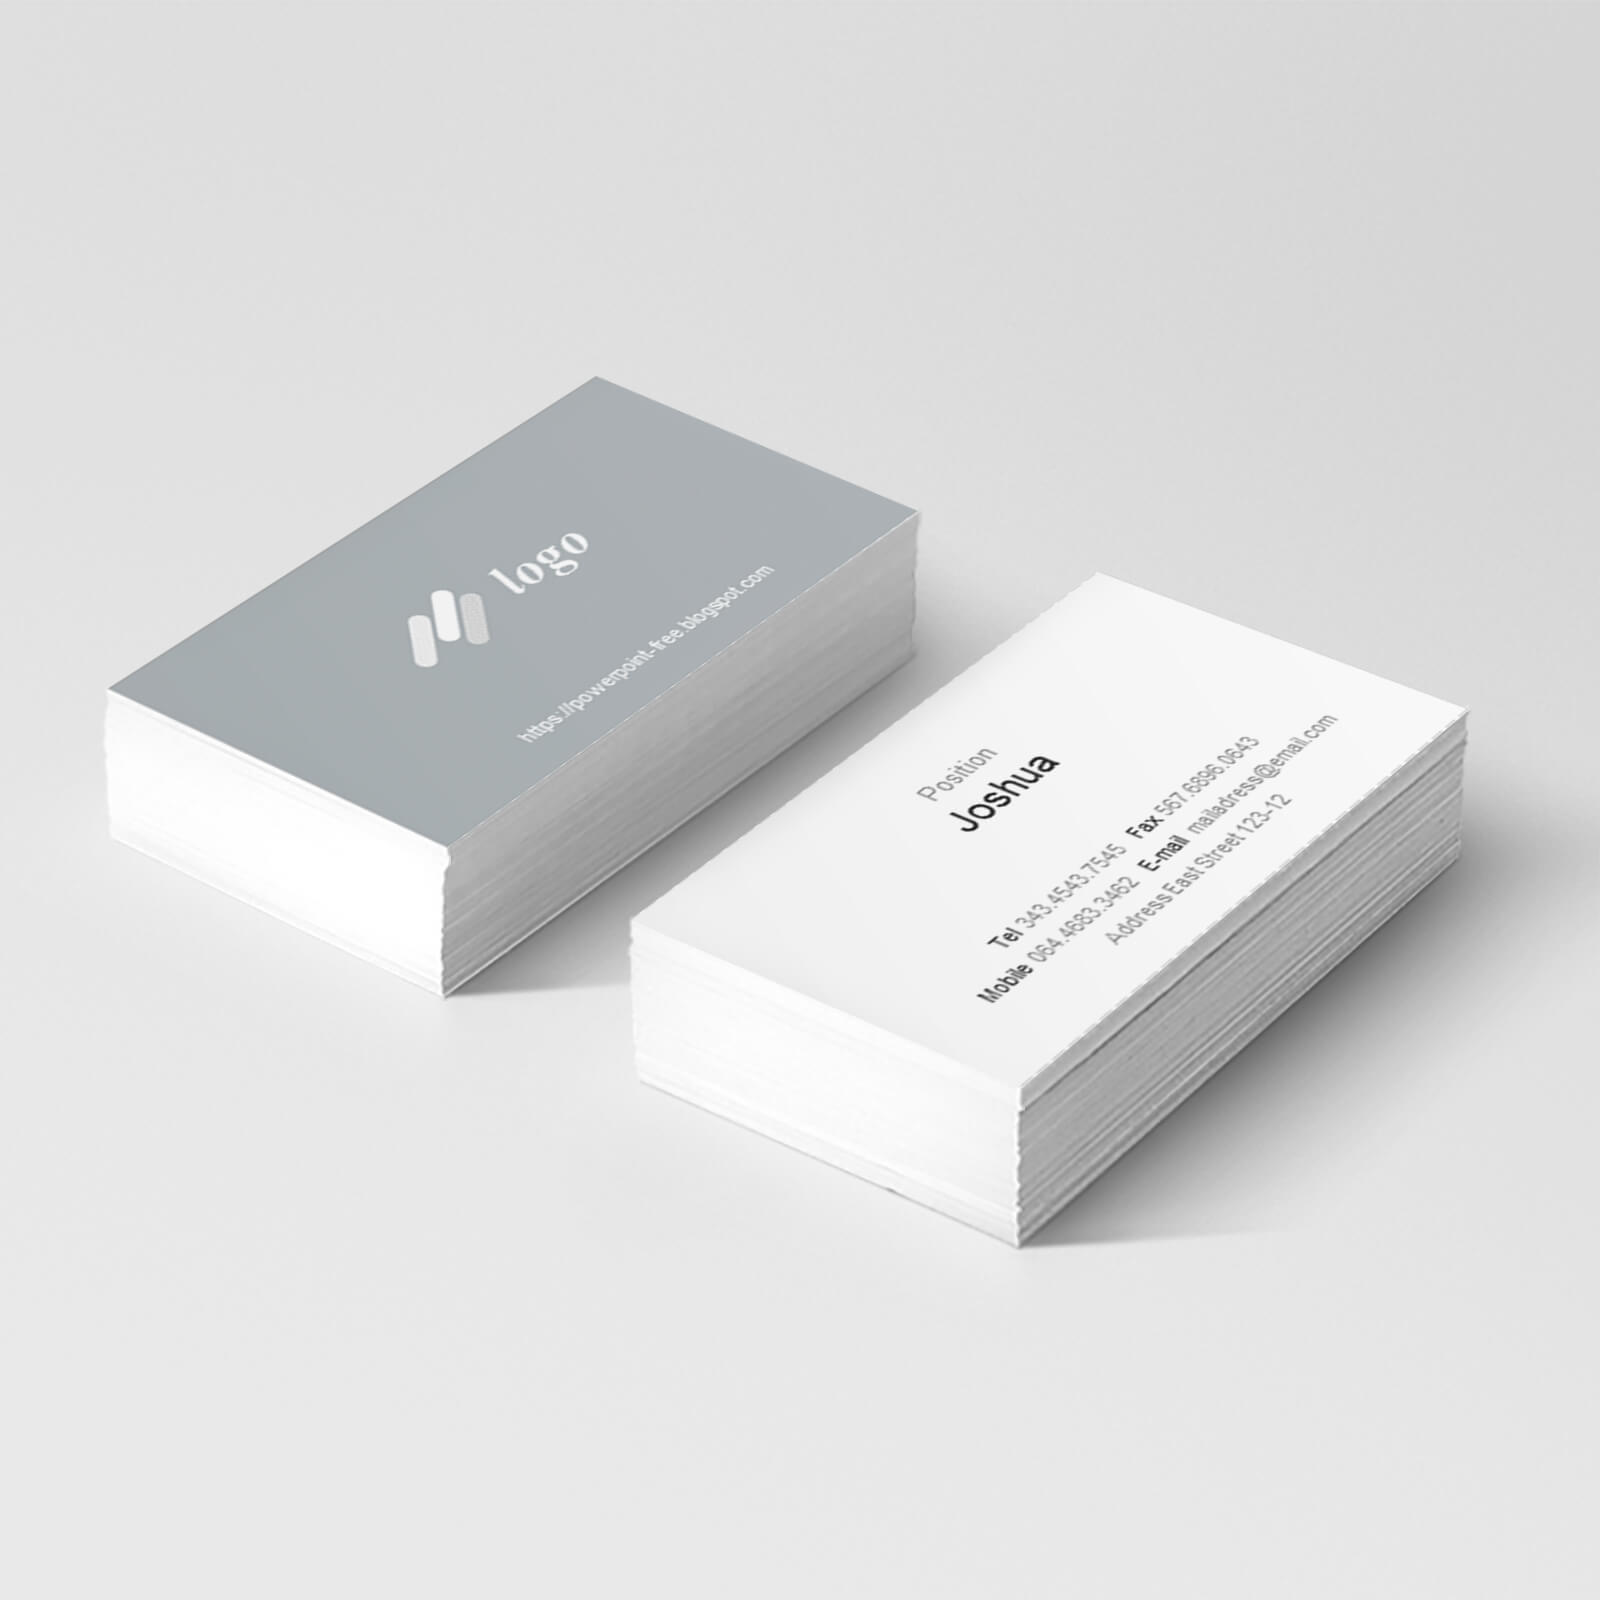 Basic Business Card Powerpoint Templates - Powerpoint Free Regarding Business Card Template Powerpoint Free